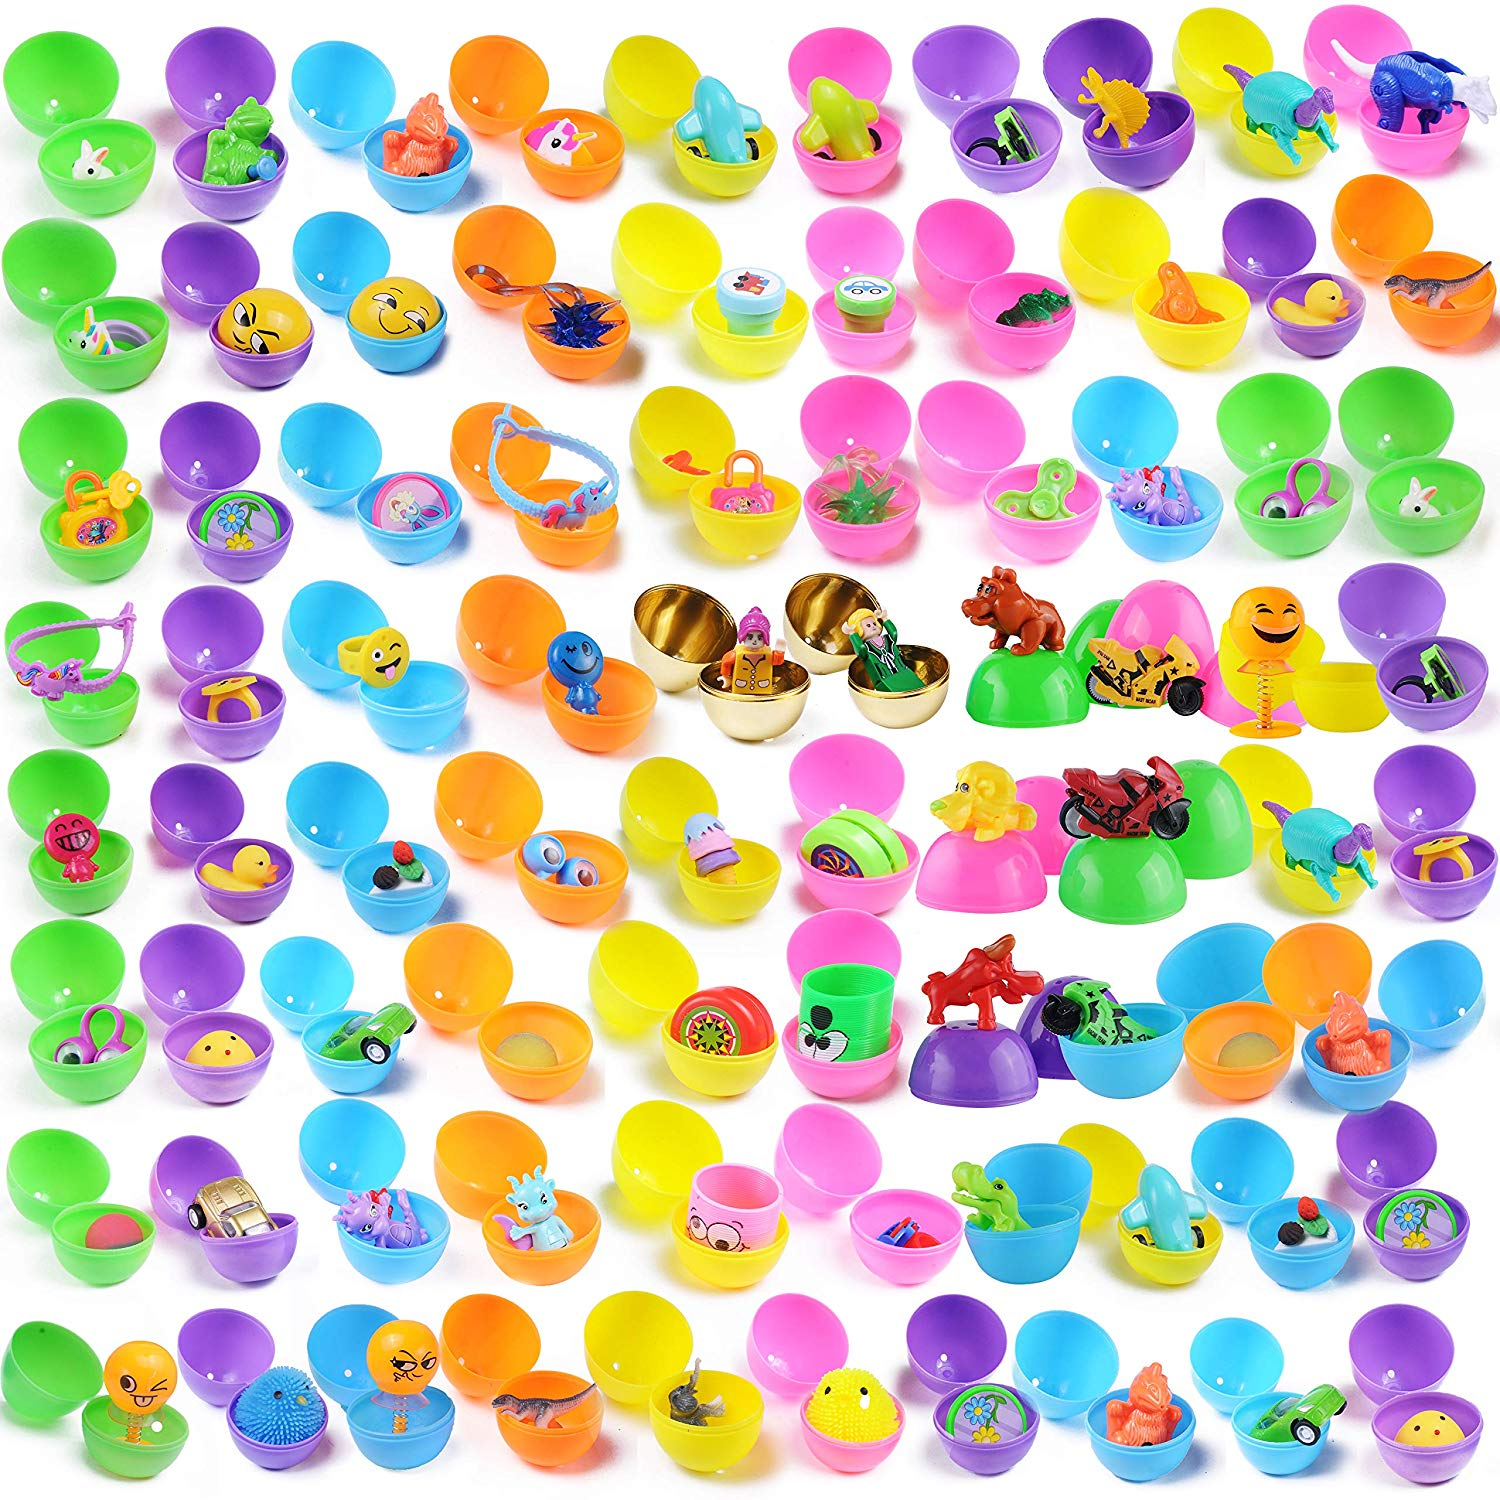 80 Pre Filled Easter Eggs with Novelty Toys with Golden Eggs